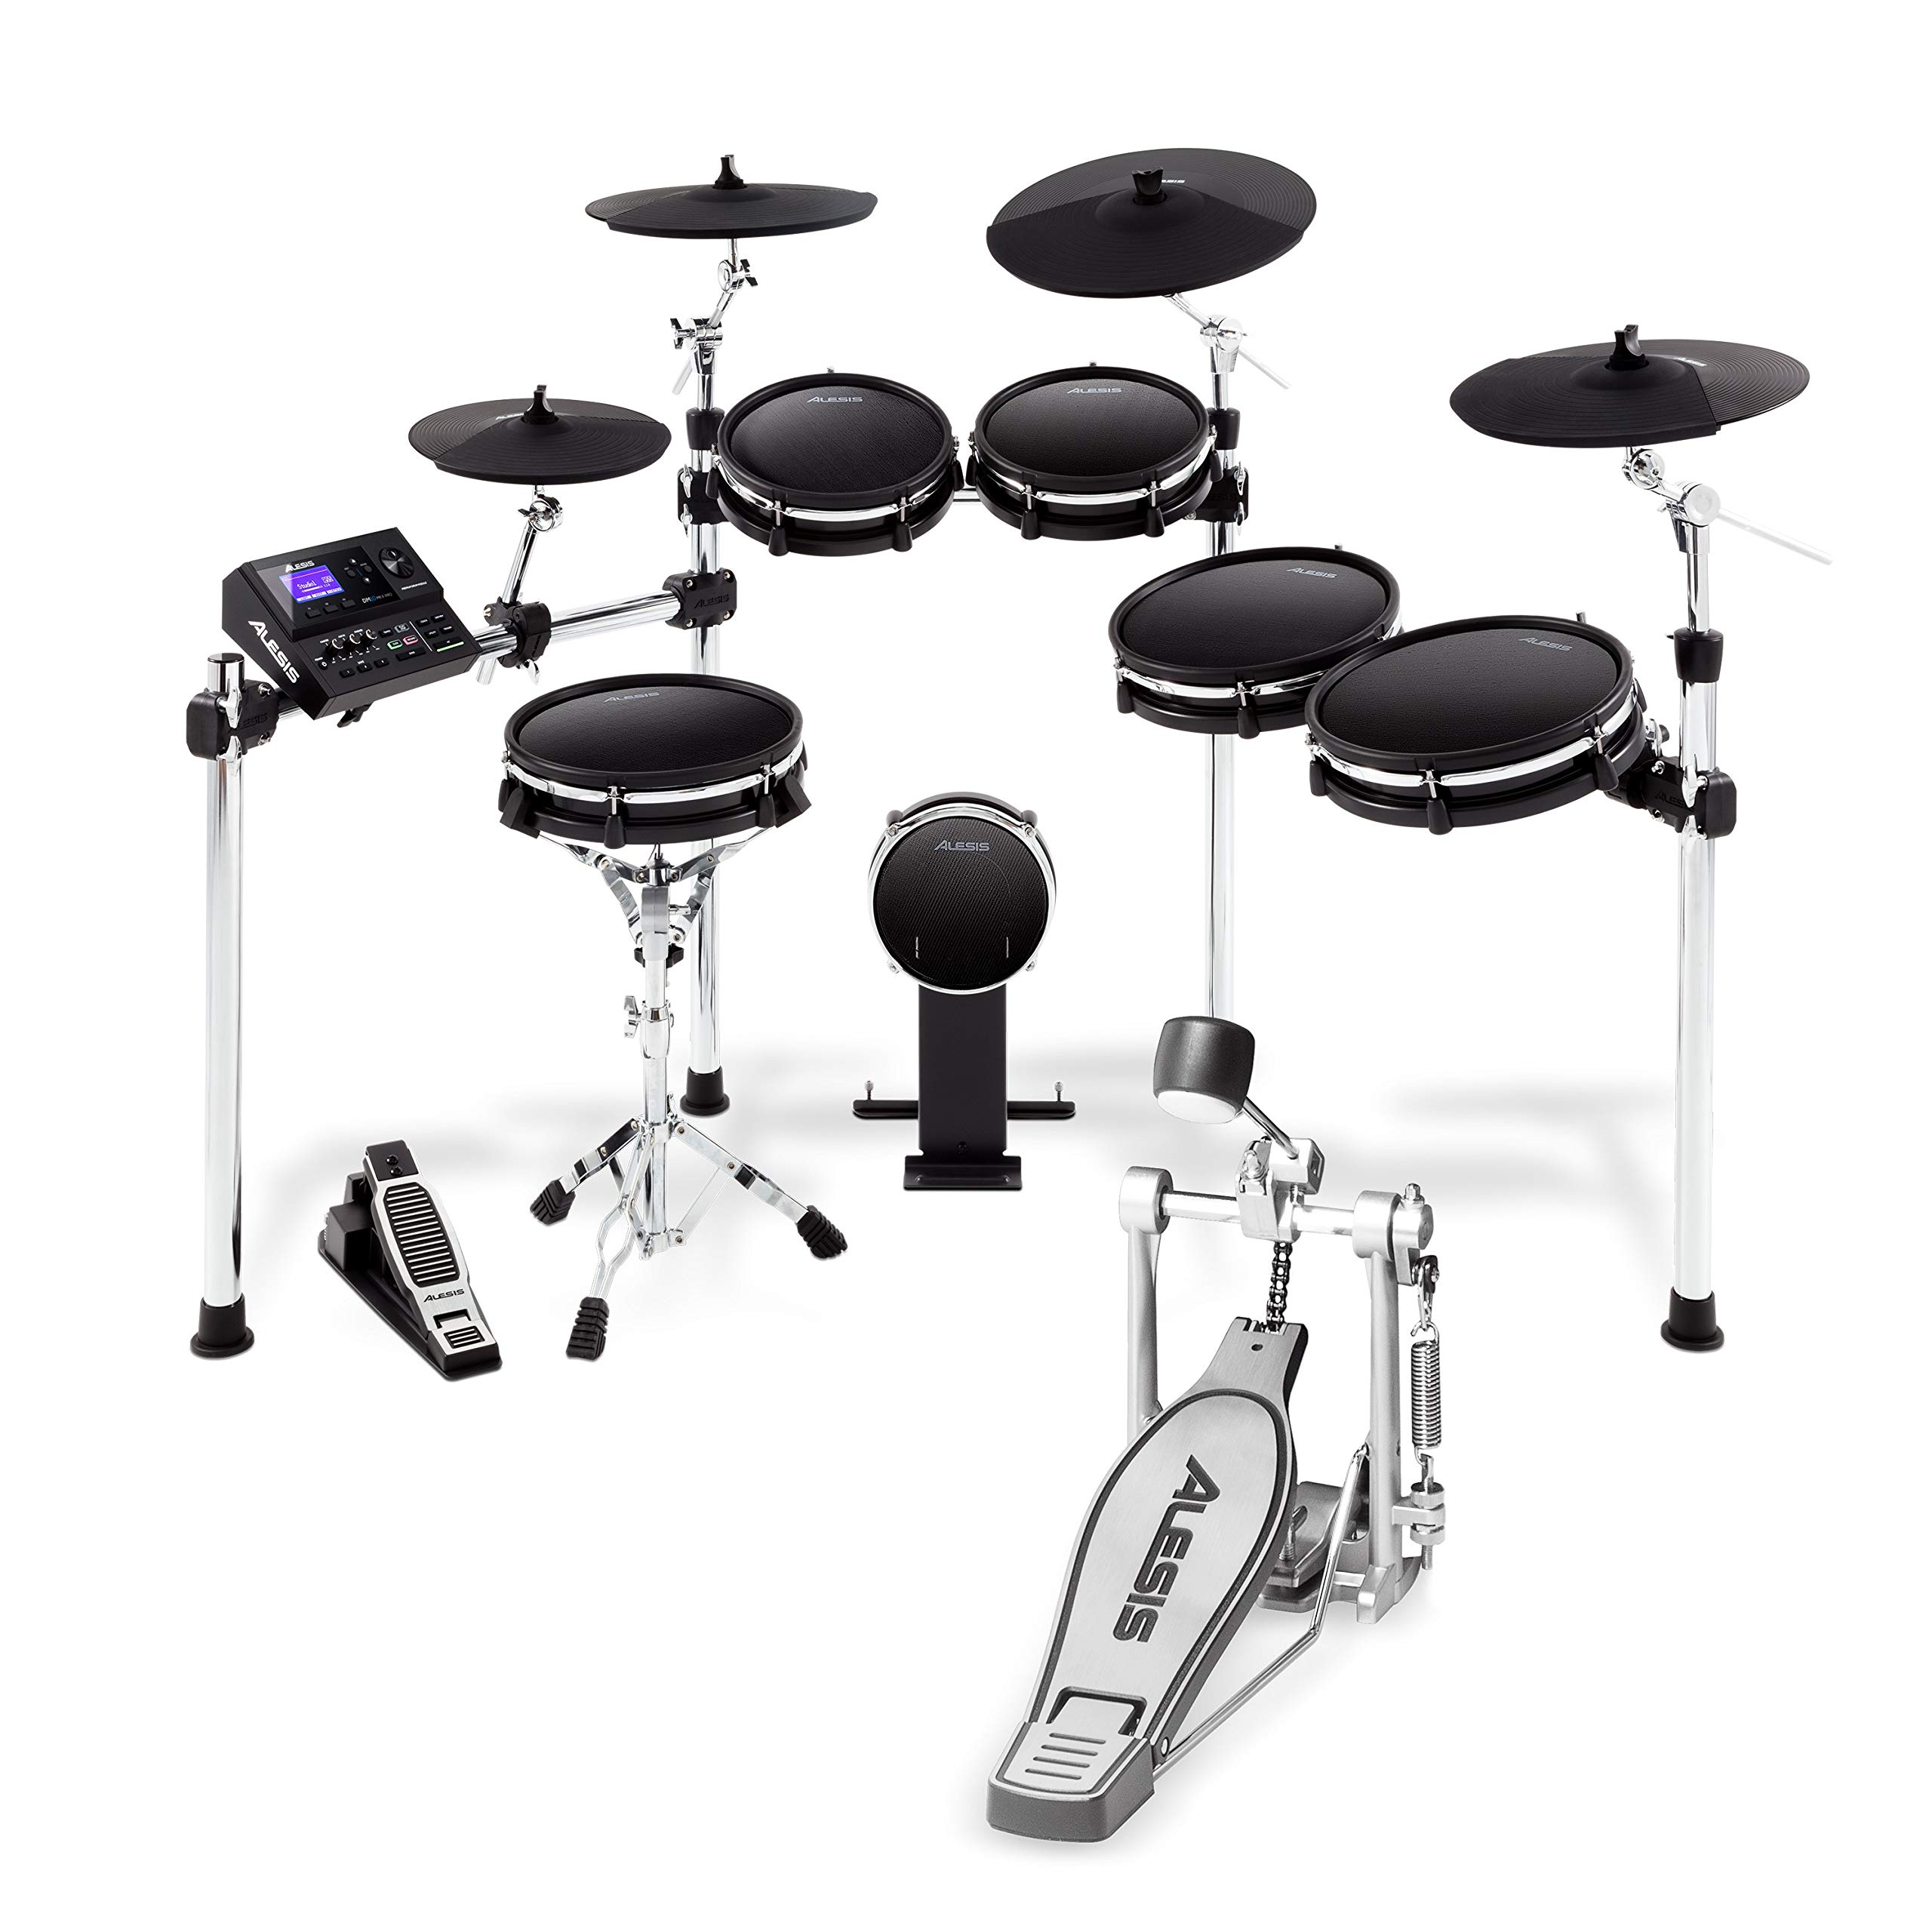 Alesis Drums KP1 and DM10MKII Pro Kit Bundle – Ten Piece Electric Drum Set with Mesh Drum Heads and Chain Drive Kick Drum Pedal